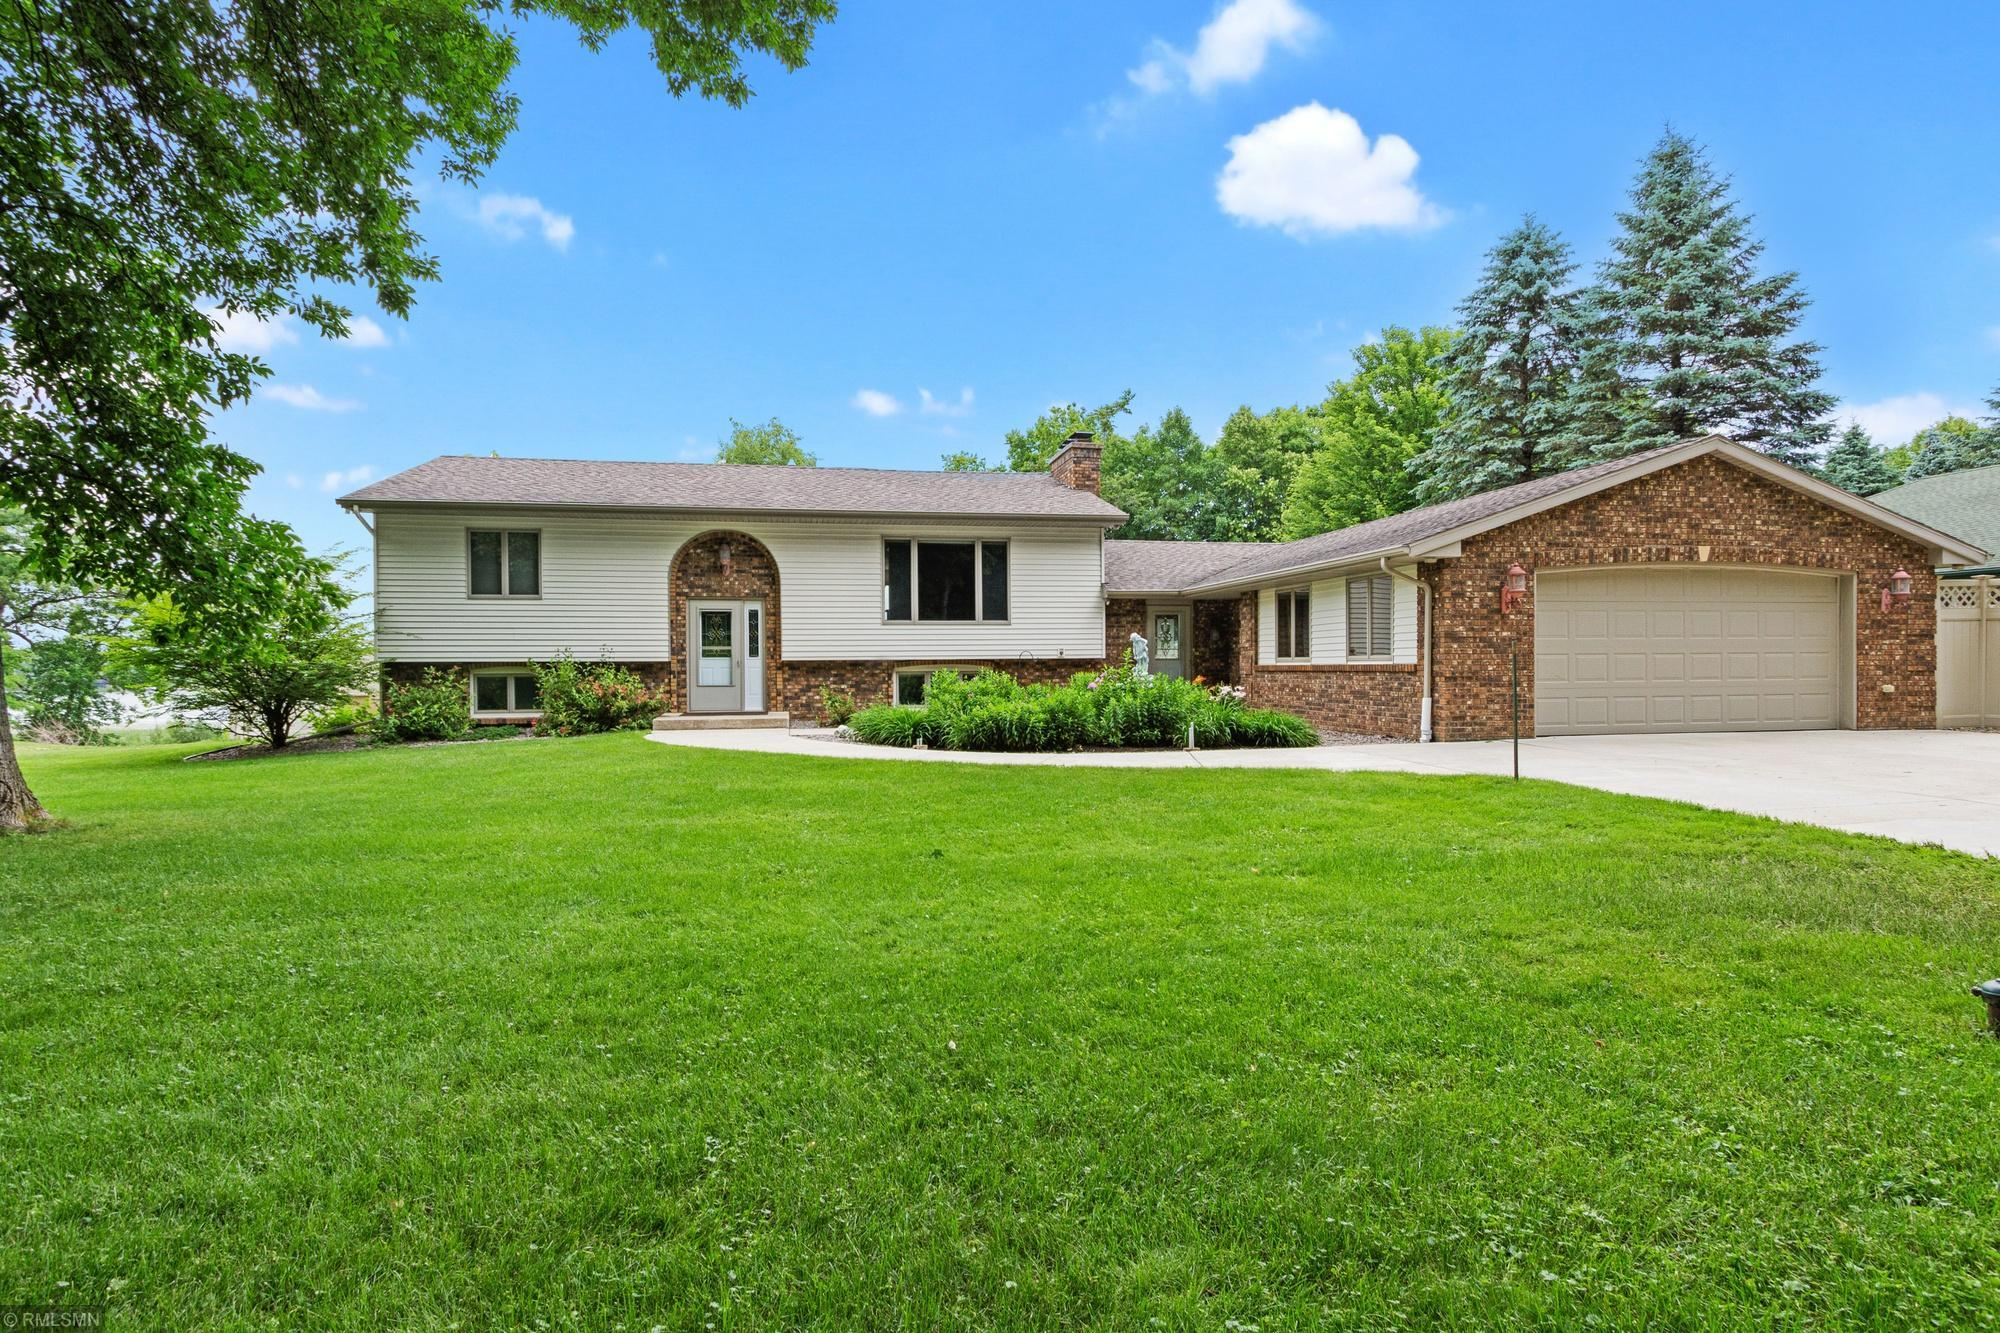 6523 117th Street NW Property Photo - Maple Lake, MN real estate listing